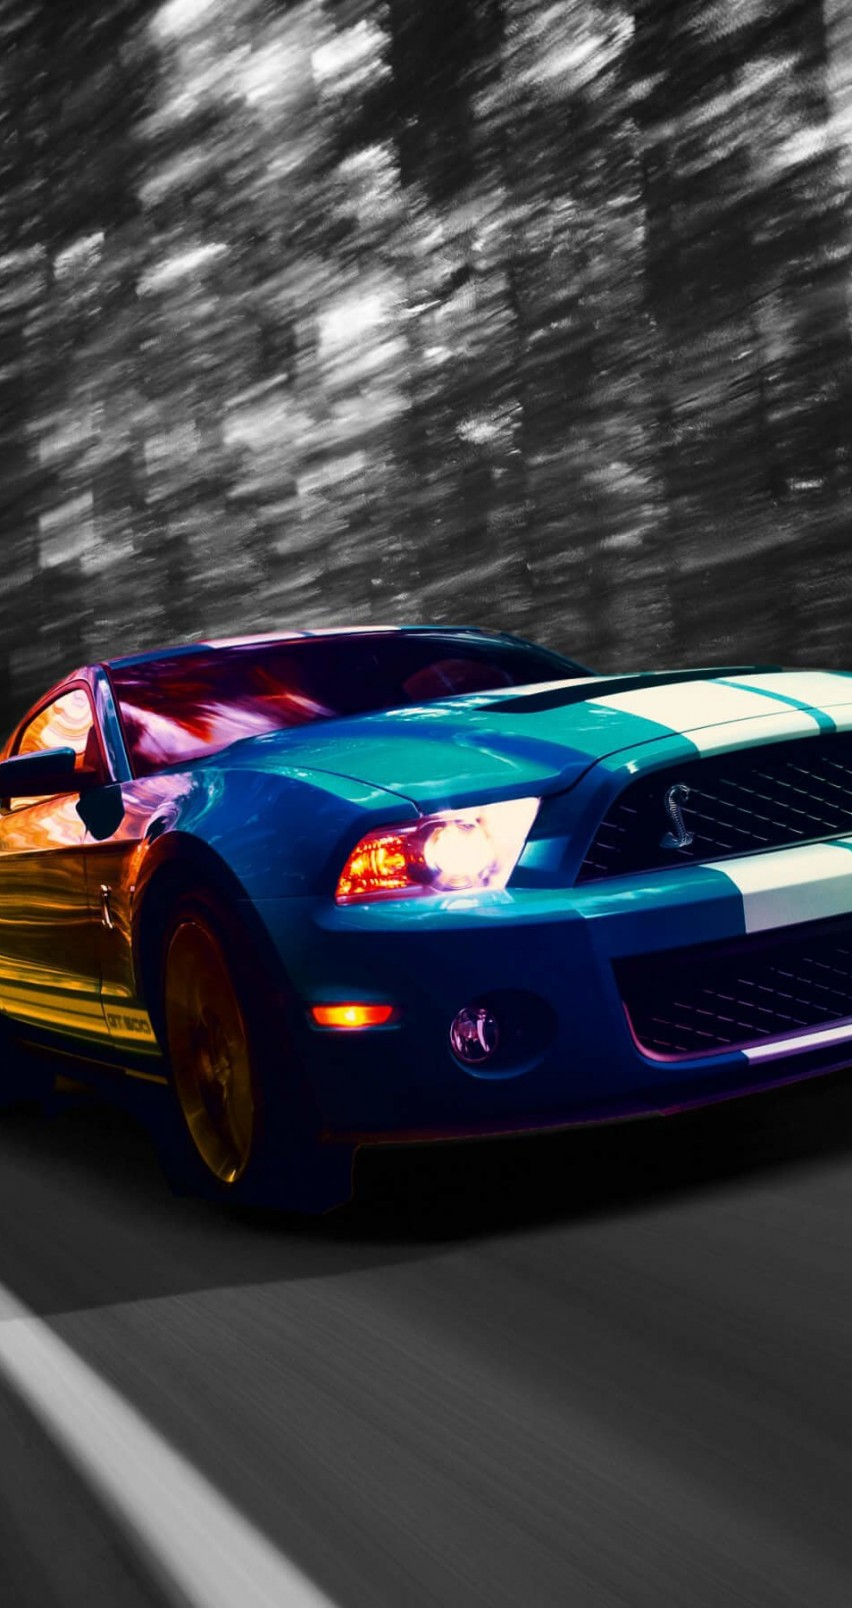 Ford Mustang Shelby GT500 Wallpaper for Apple iPhone 6 / 6s